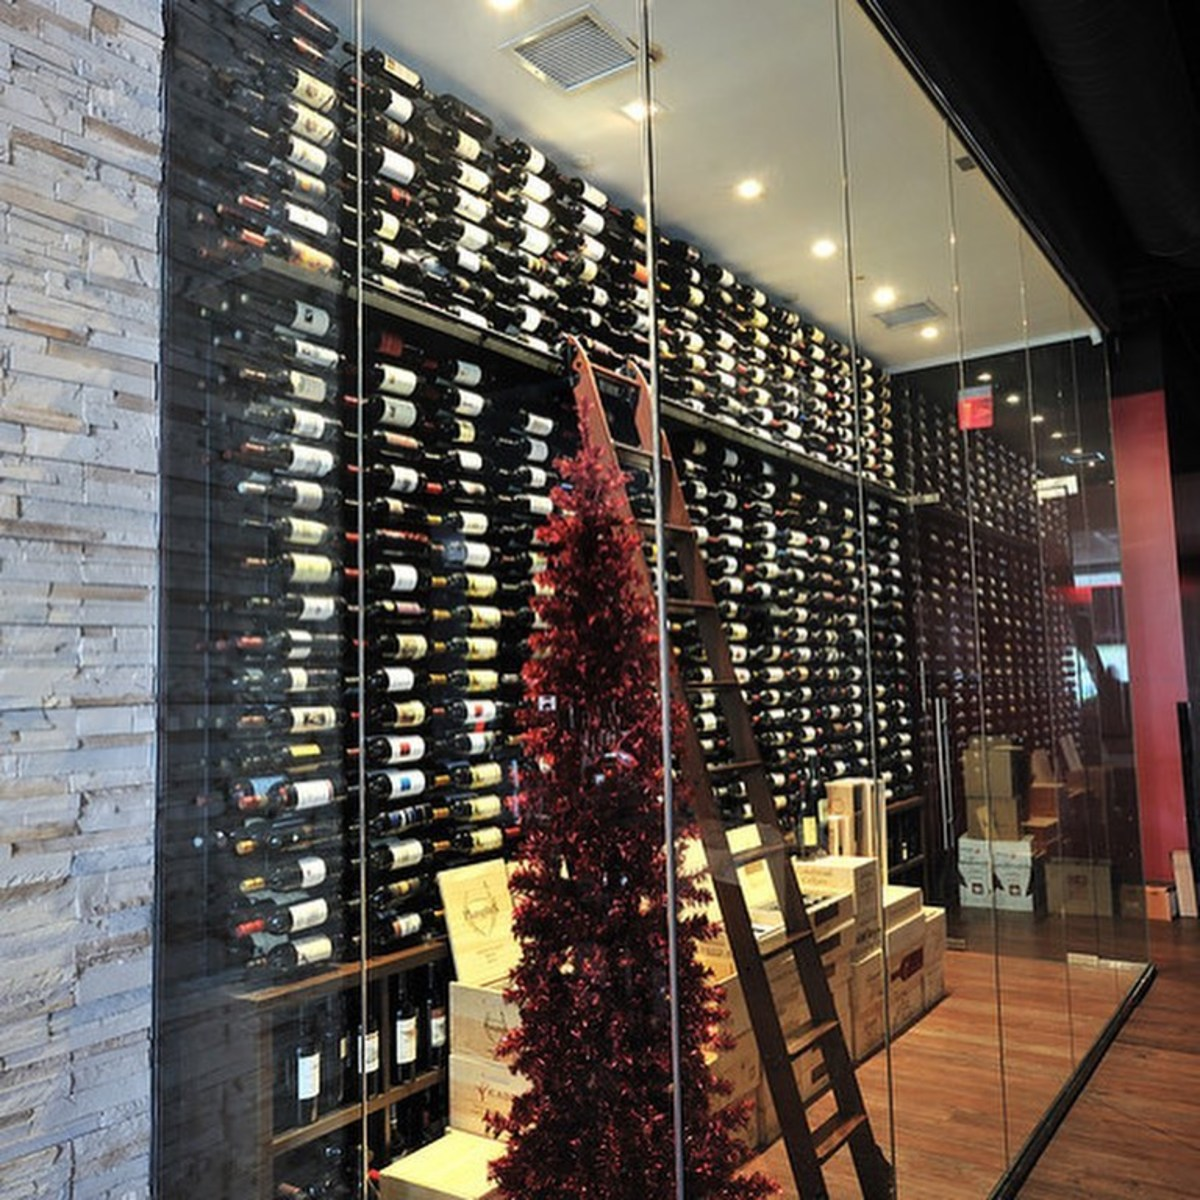 tips-to-properly-install-wine-cellar-cooling-unit